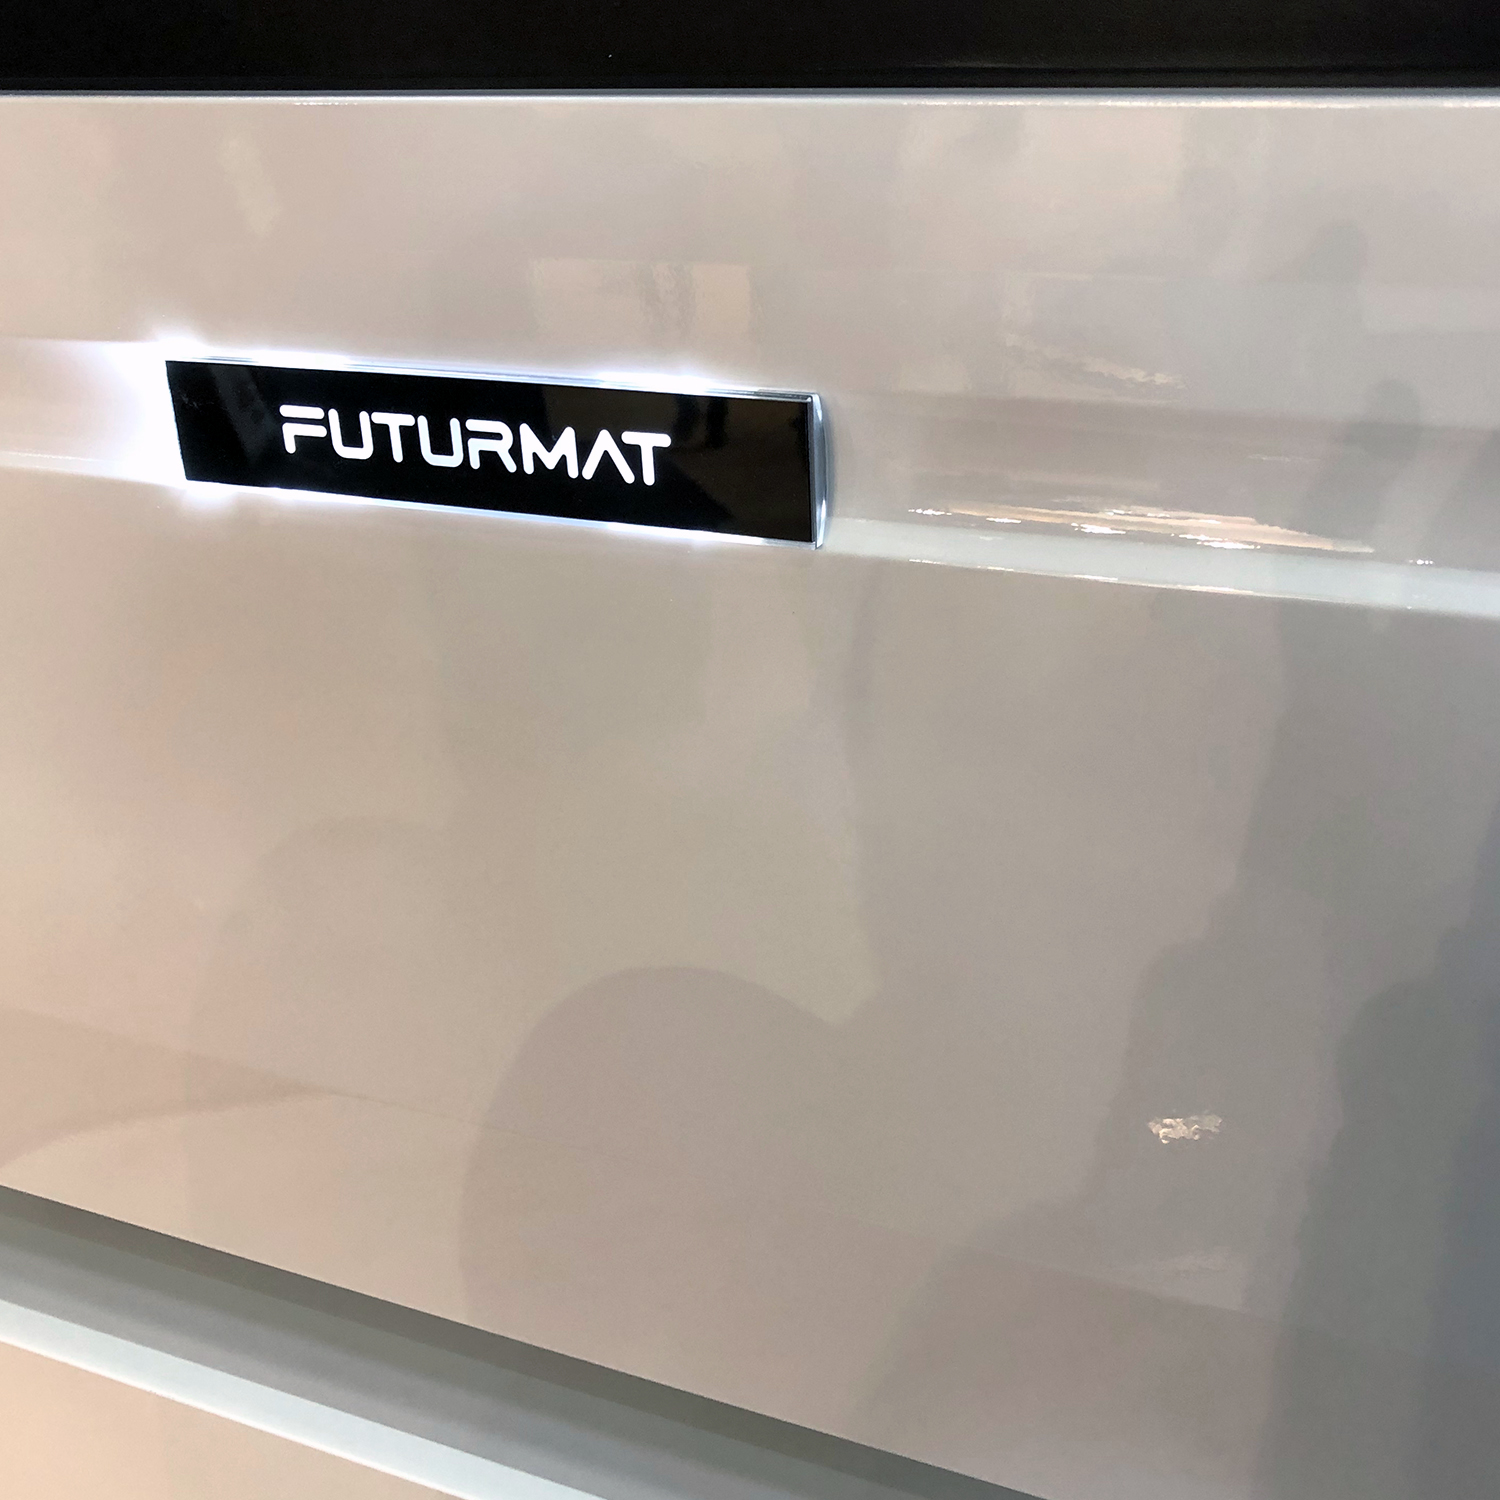 Hostelco coffee machine Futurmat F3 launch engineering design